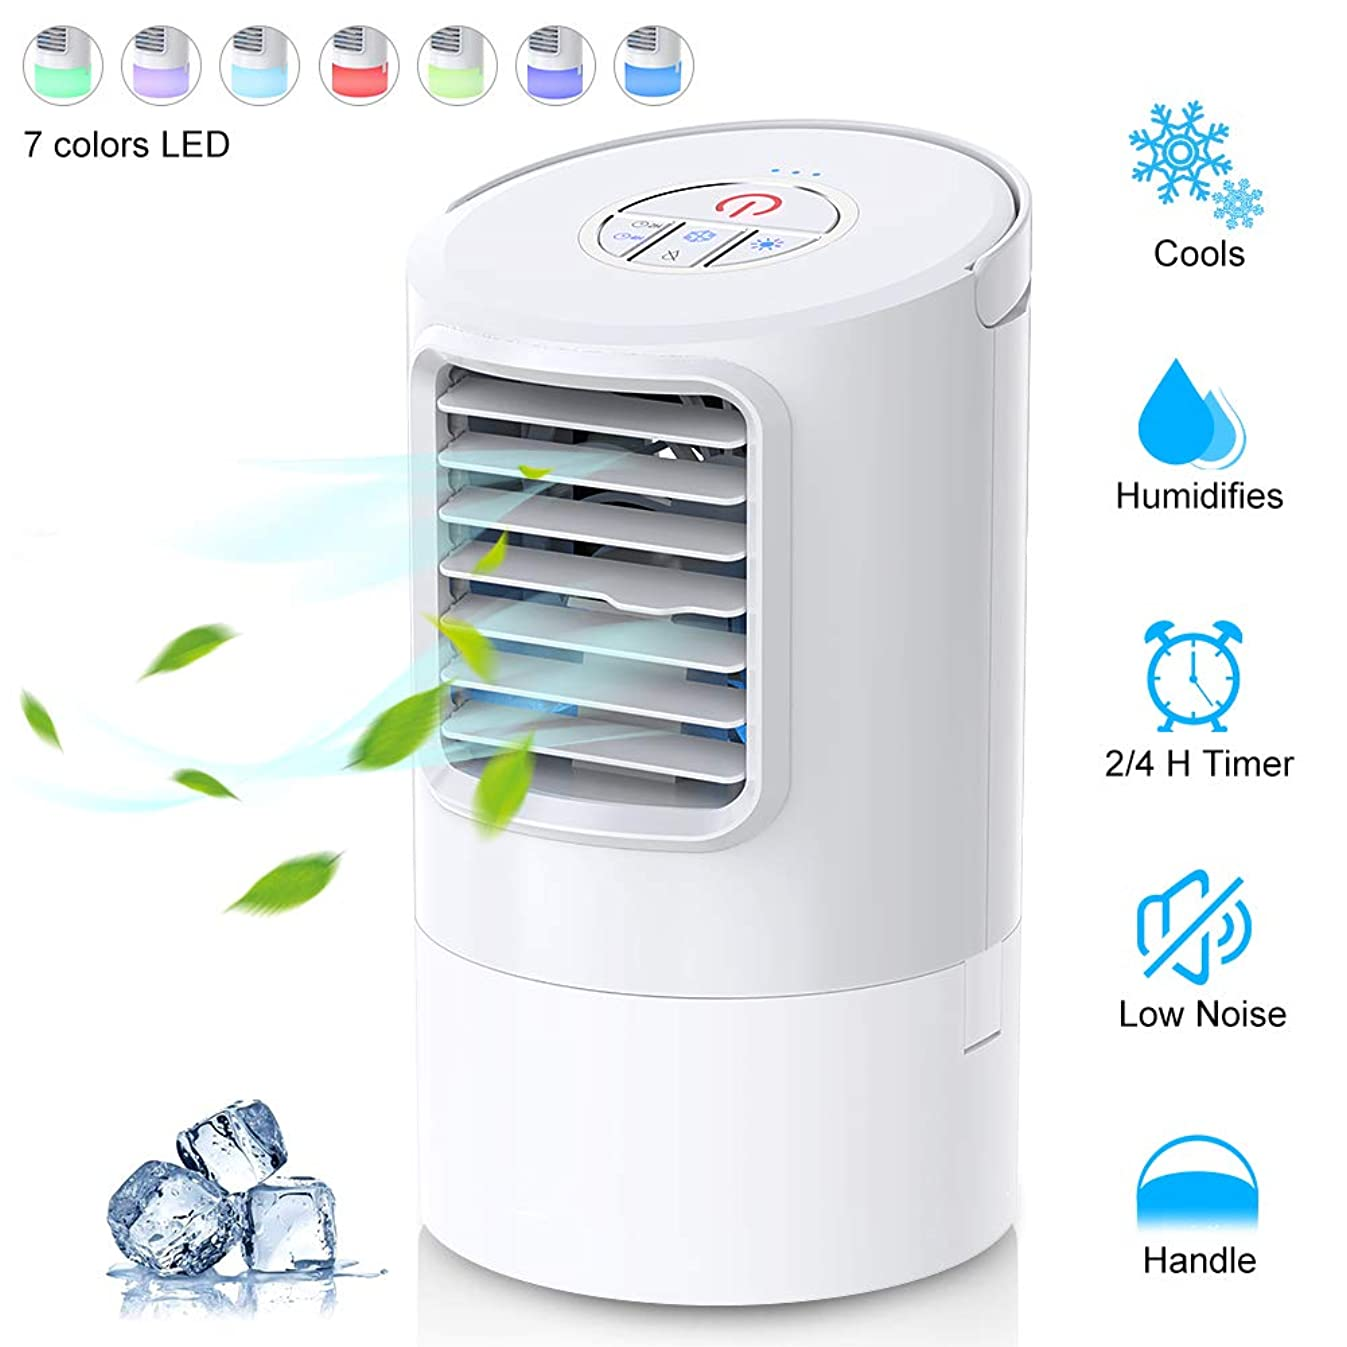 WEINAS Personal Air Conditioner Fan, Personal Space Cooler for Desktop Portable Mini Evaporative Air Cooler, Humidifier Misting Fan Air Conditioner for Room, Office, Kitchen